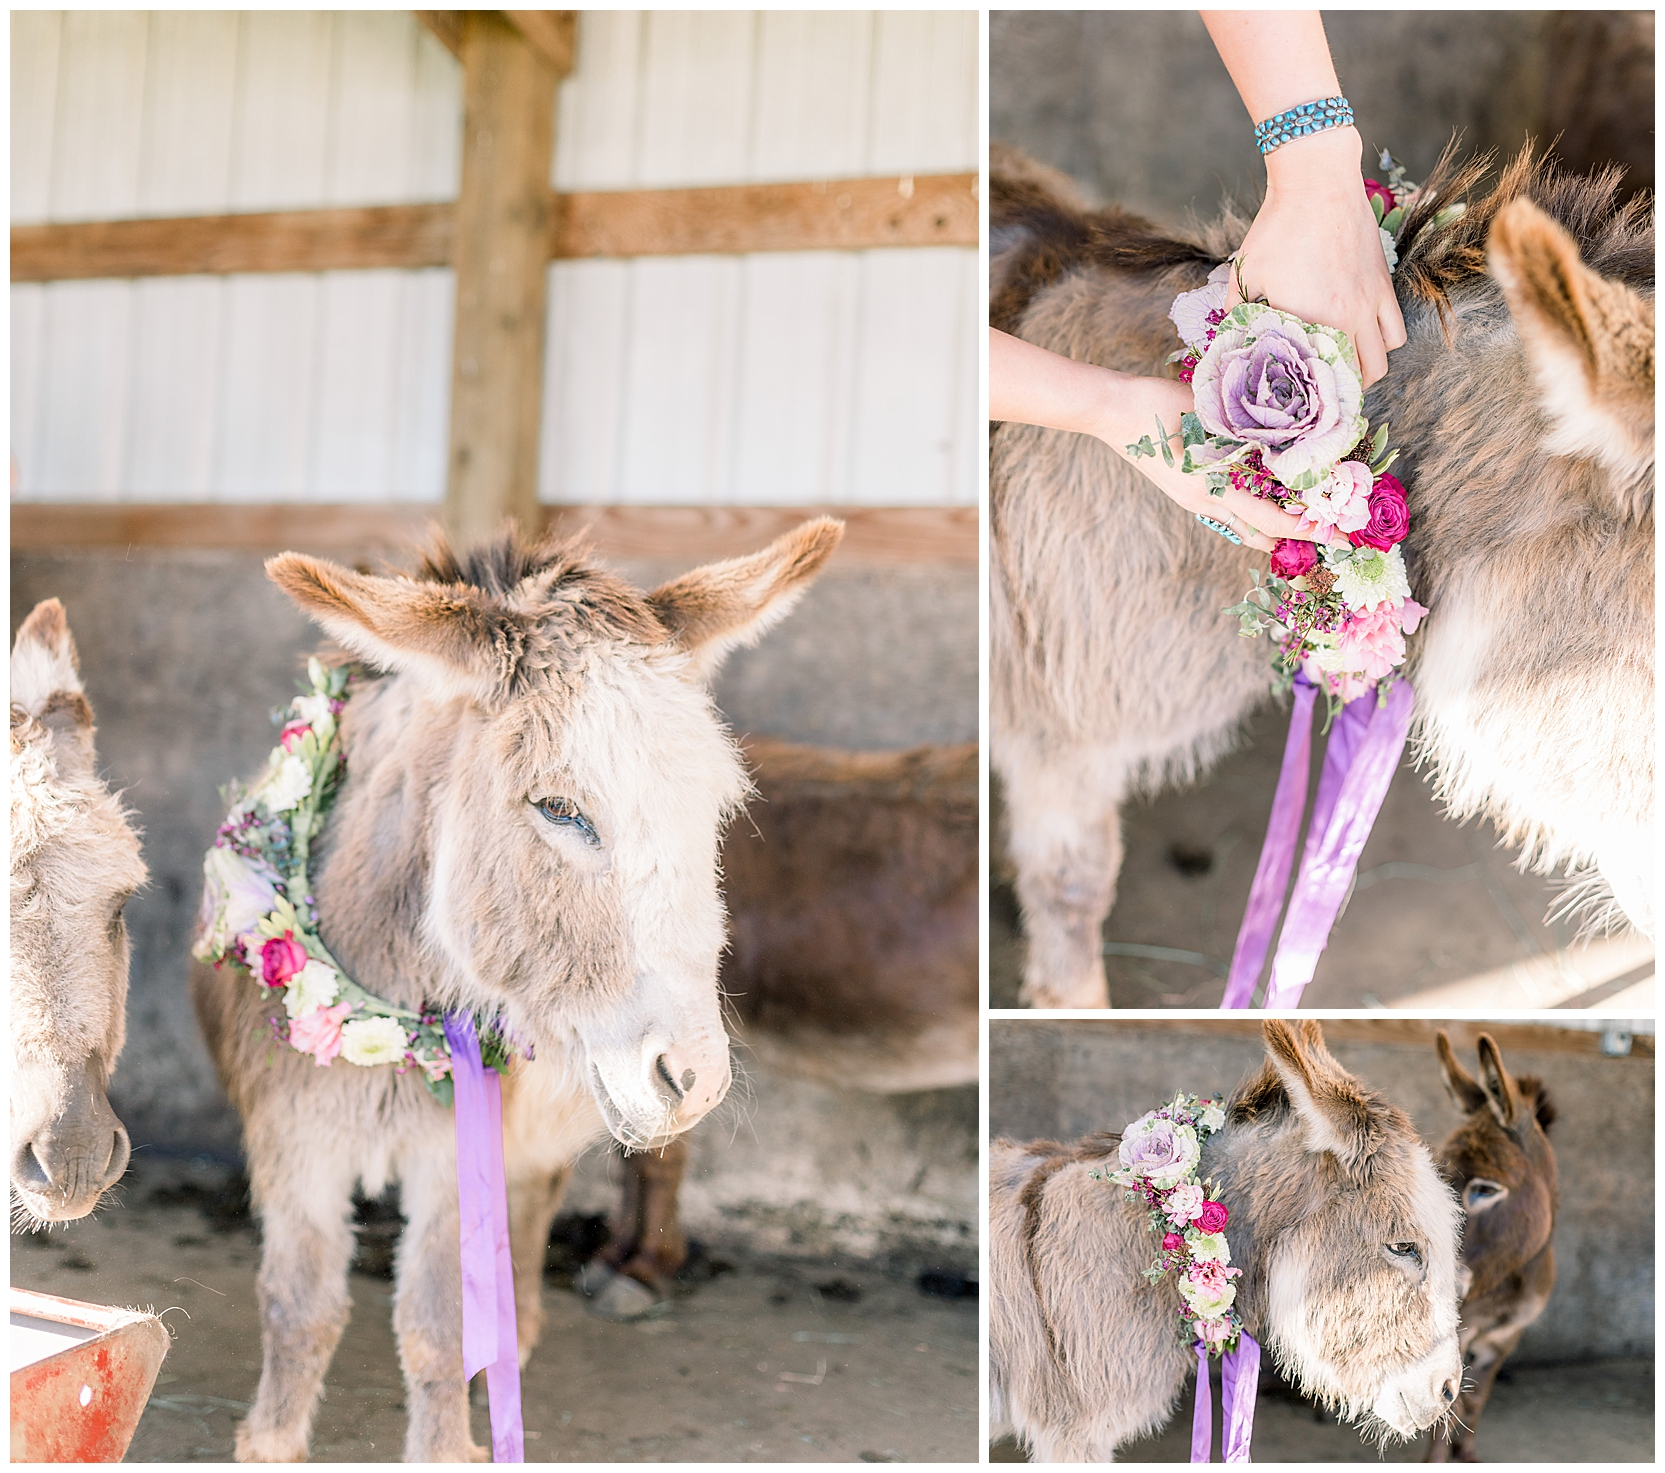 jessicafredericks_st petersburg_wedding_photographer_bridesmaid_farm_donkey_flower crown_inspo_0012.jpg